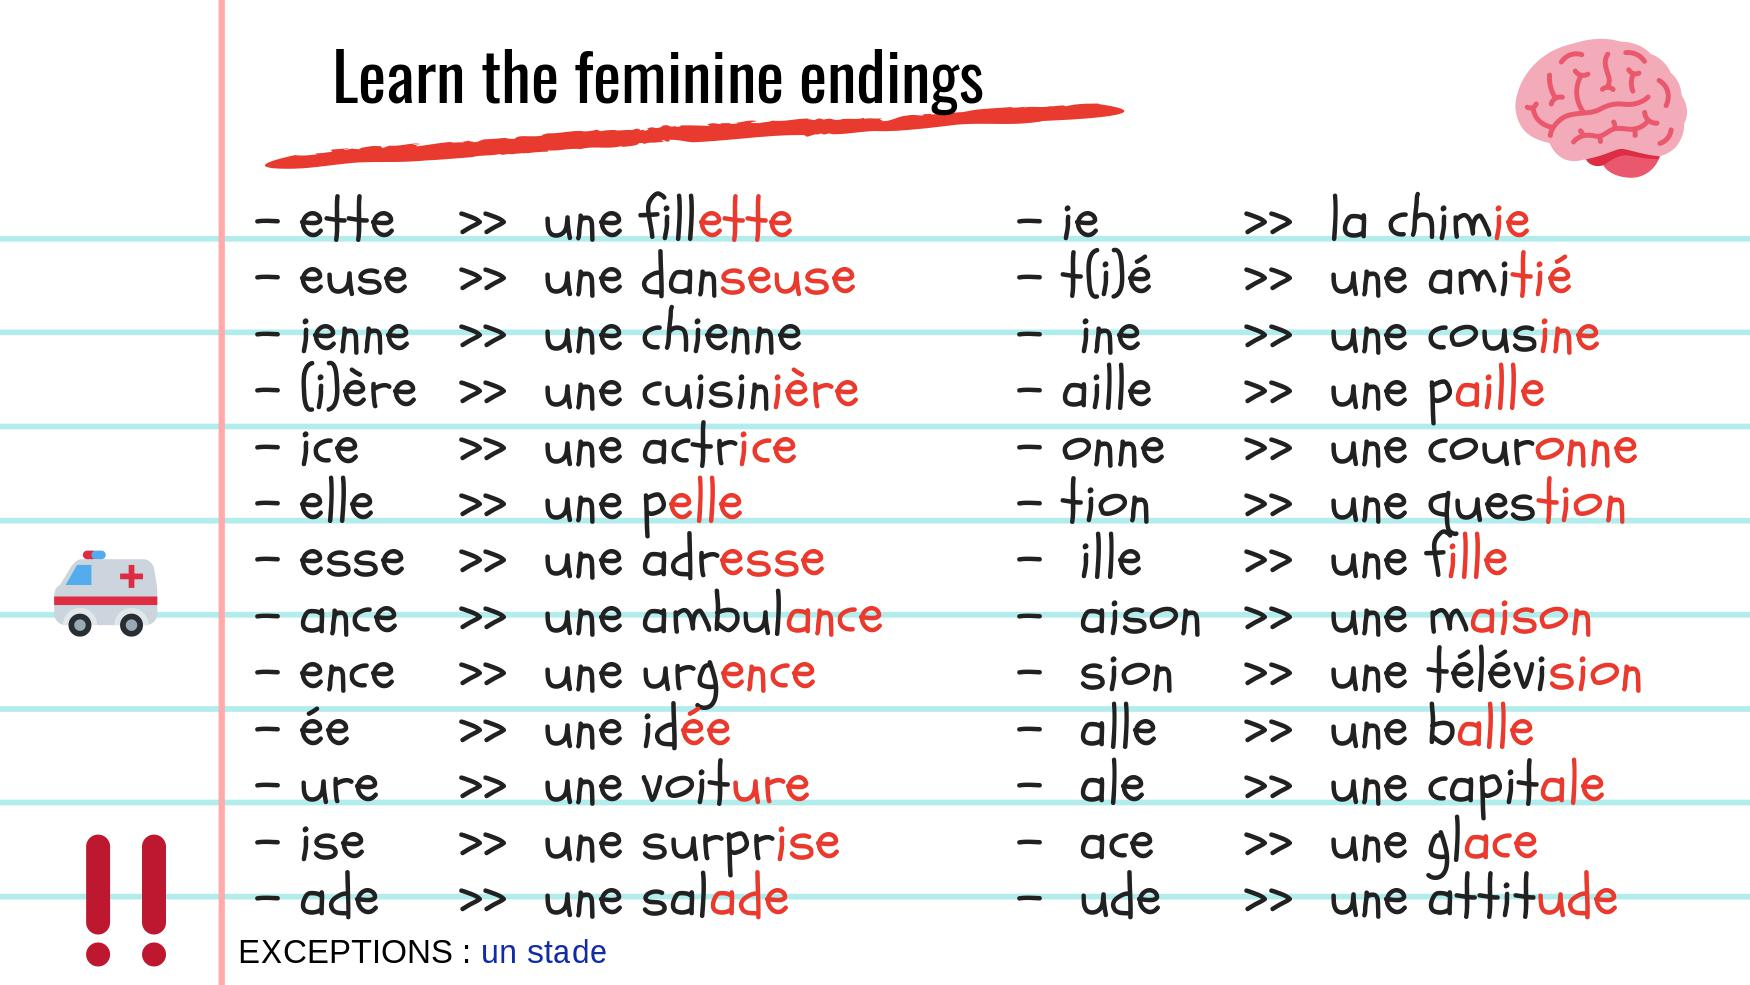 4 Hacks To Visually Identify The Gender Of French Words